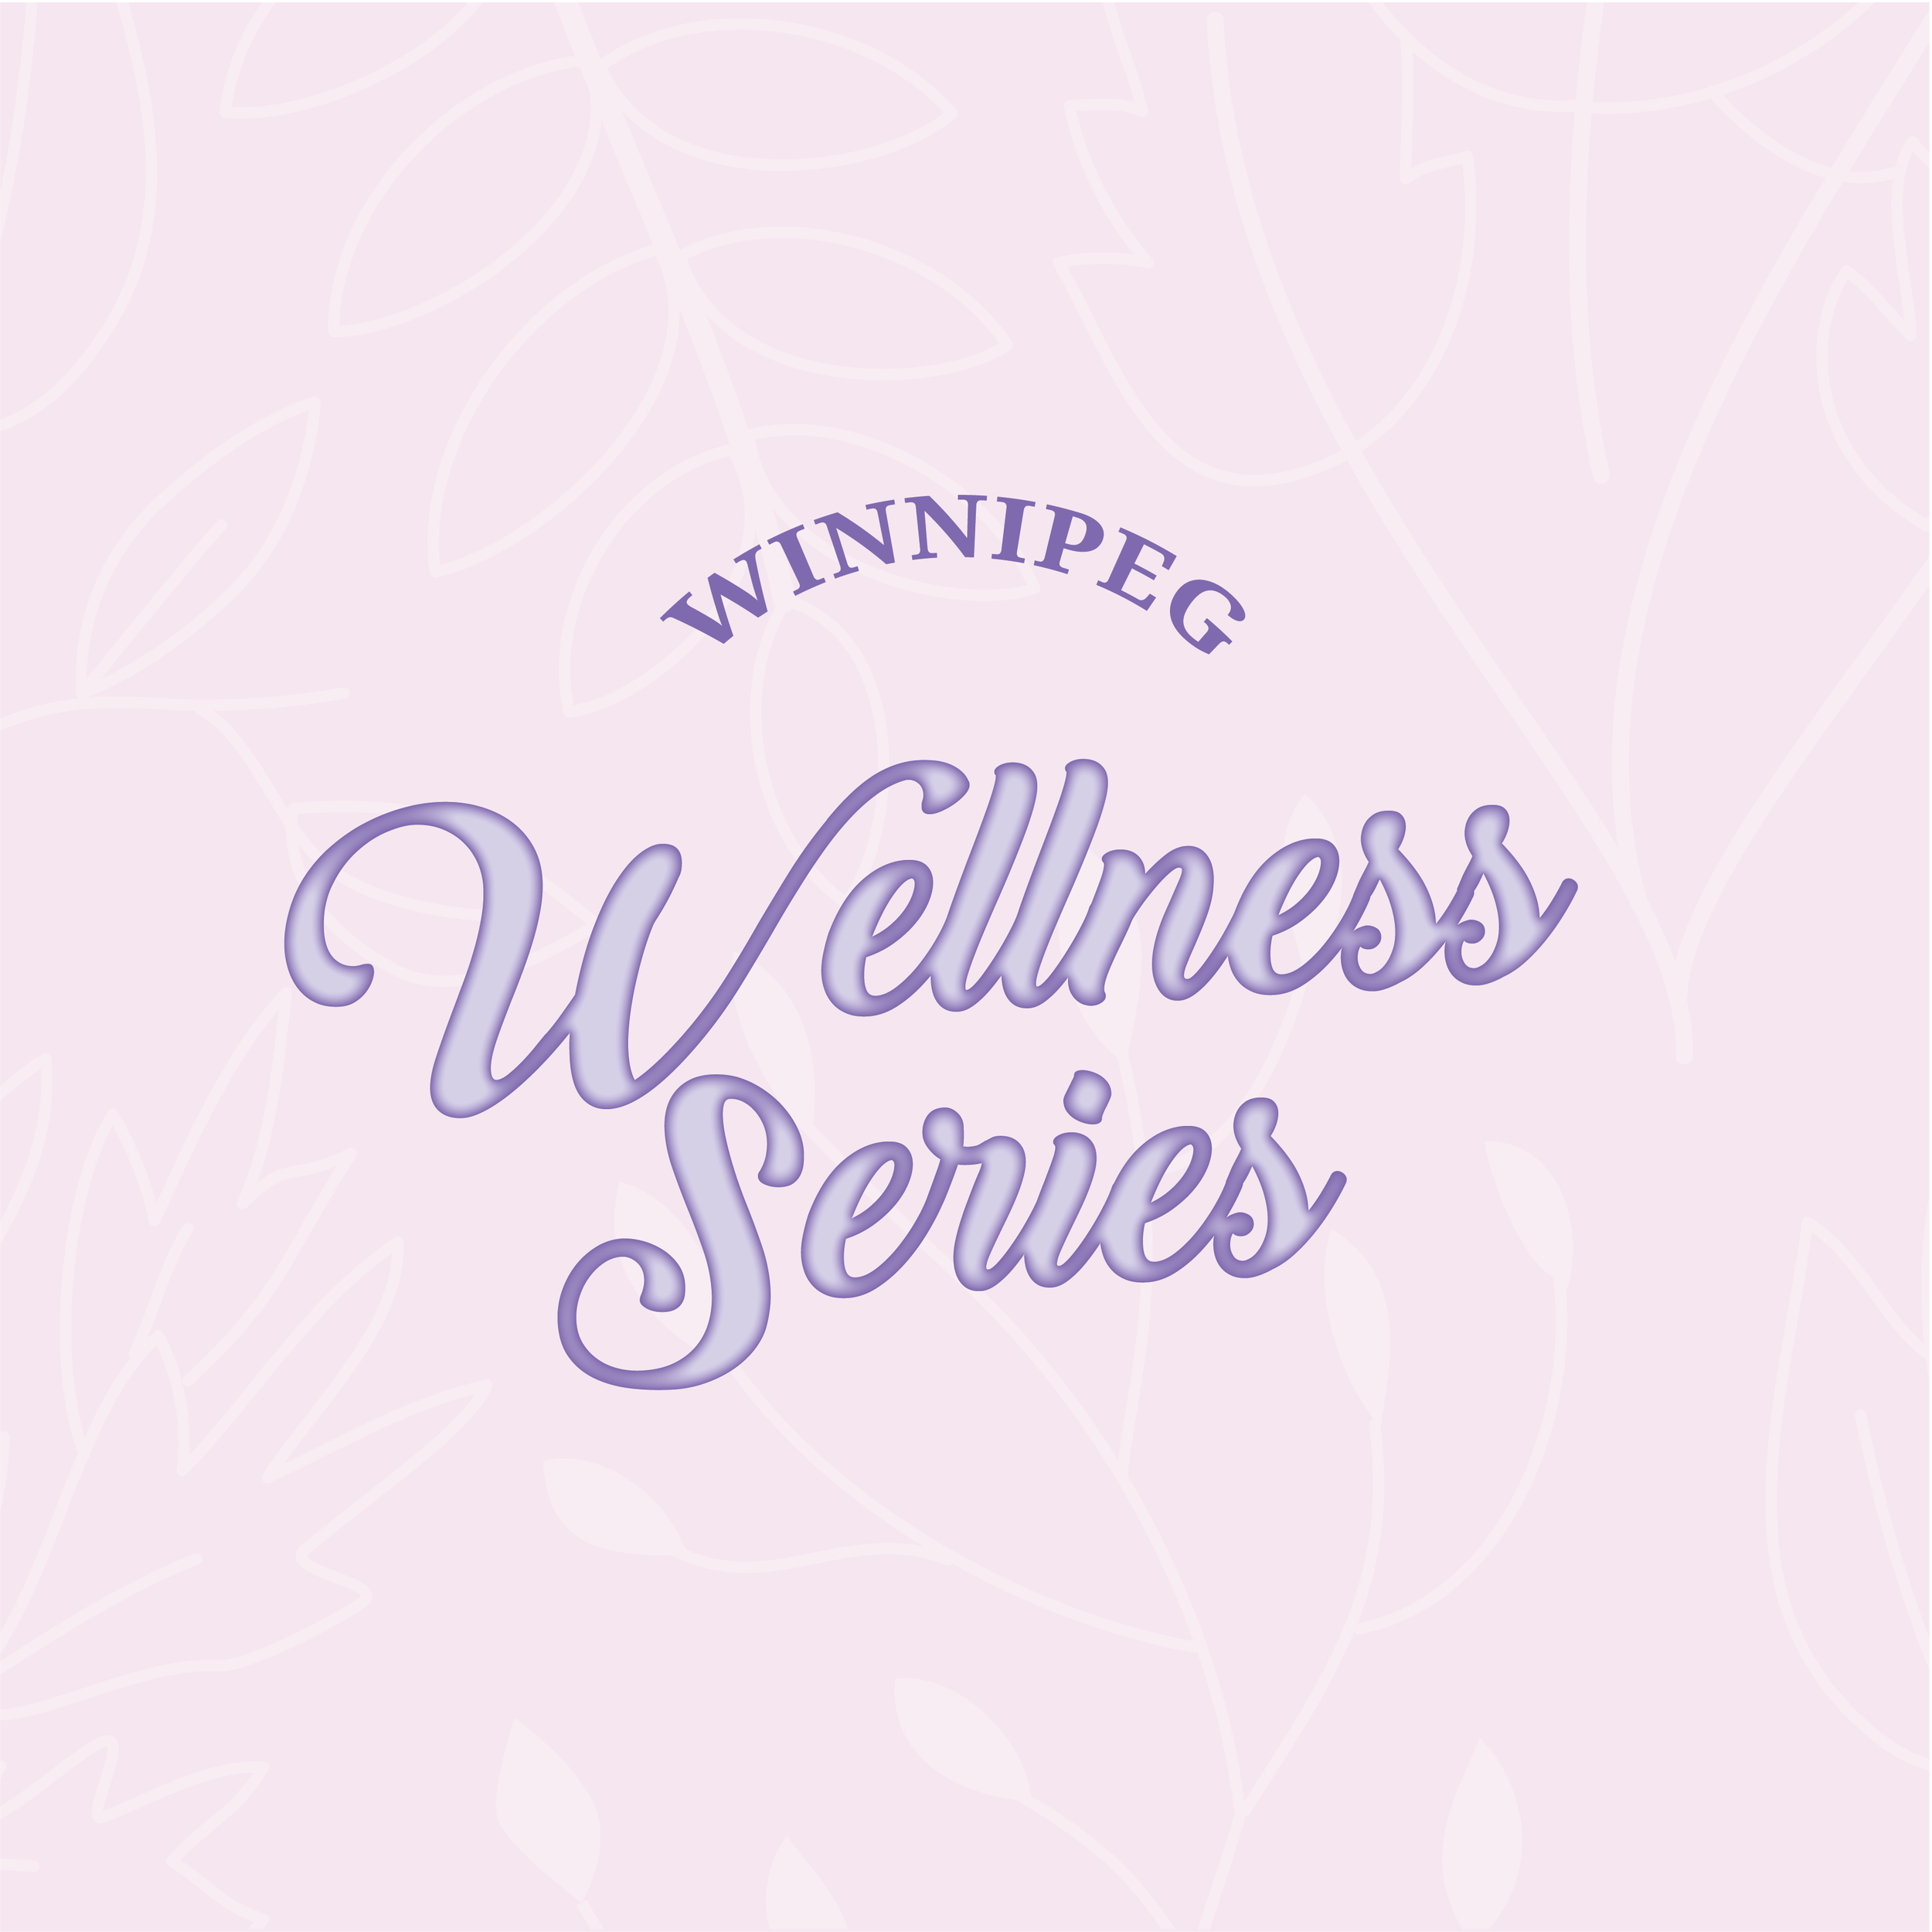 Ace_WellnessSeries_2019-03.png